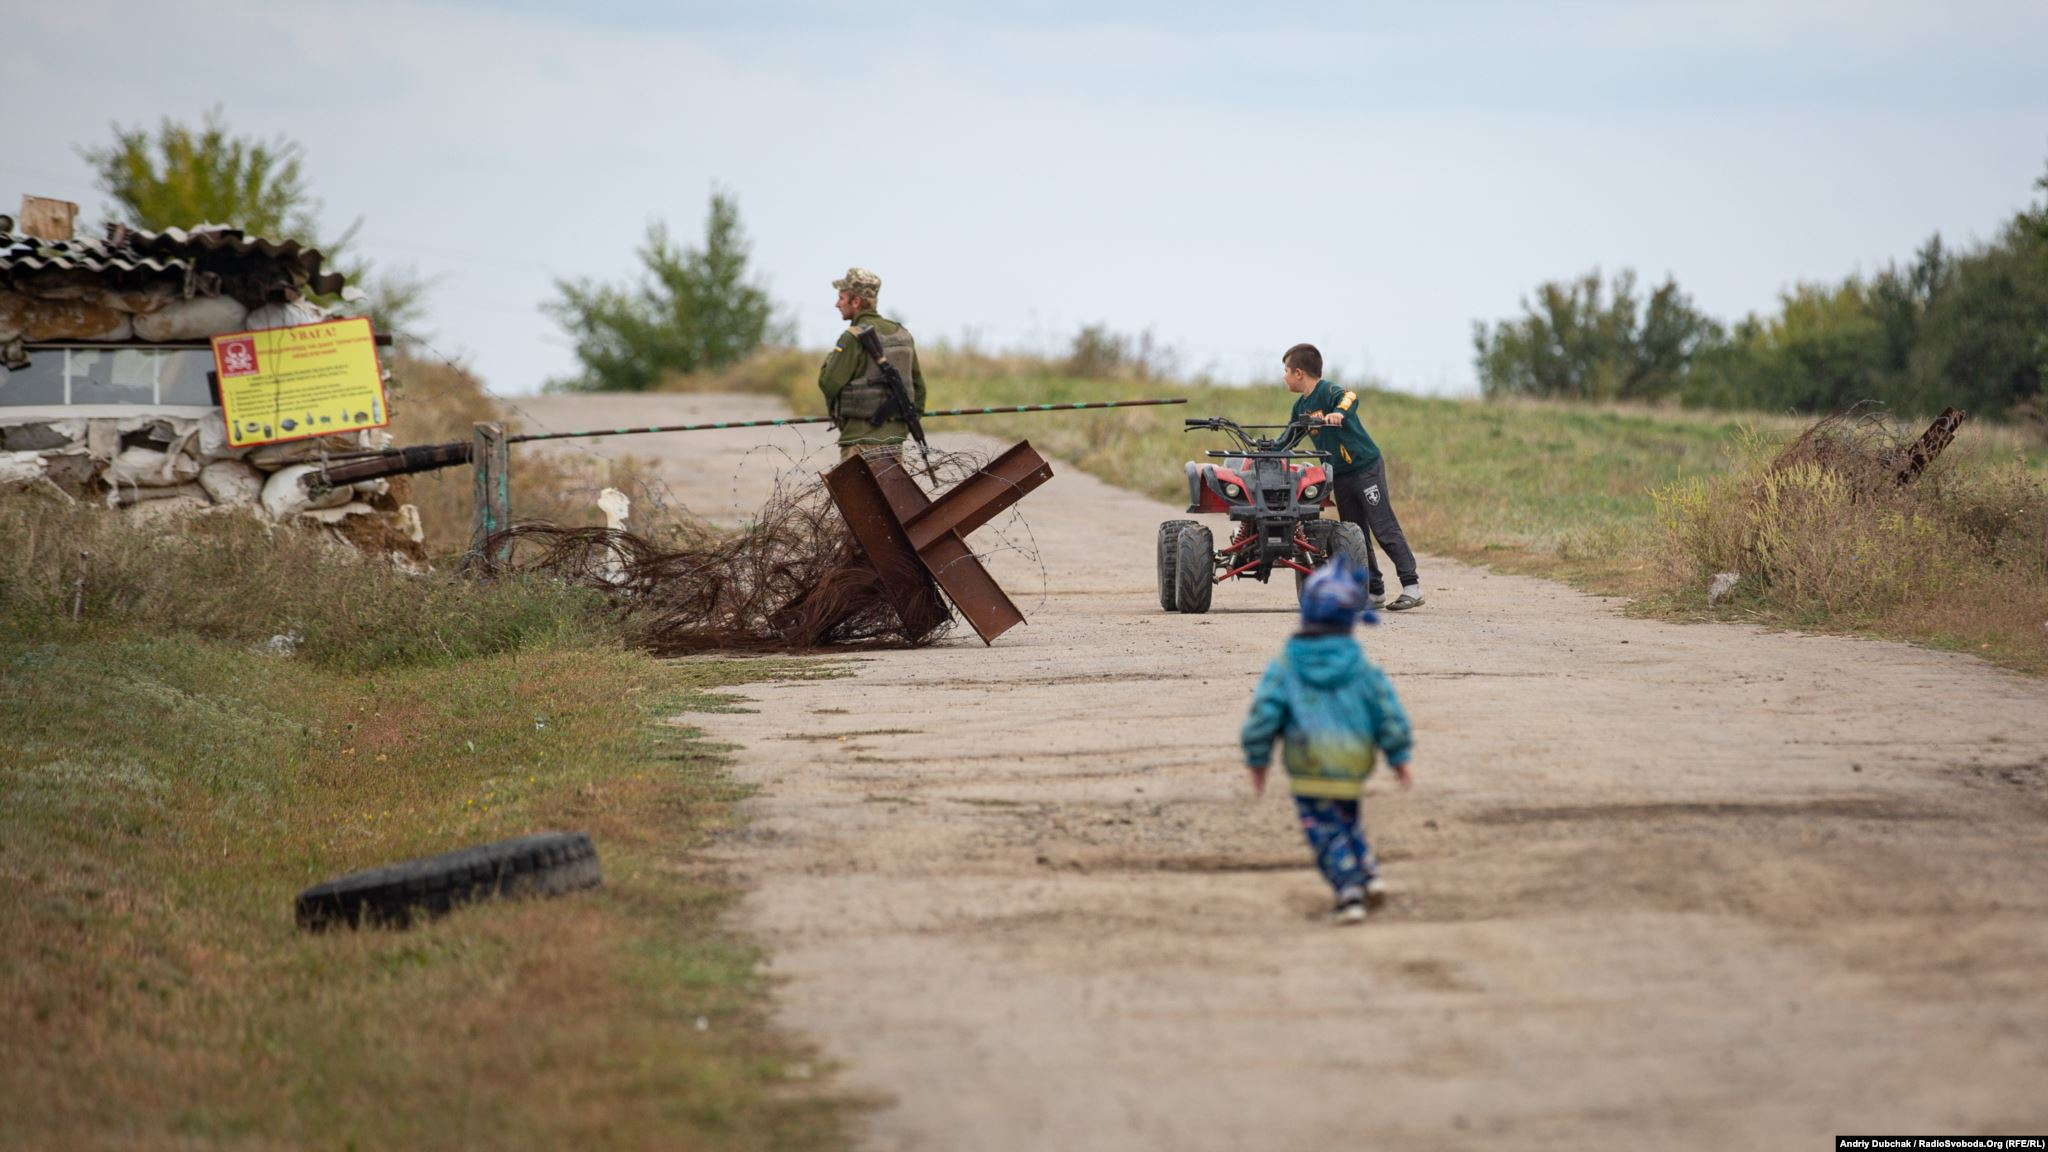 Ten-year-old Davyd rides a mini-quad bike while Stepan tries to catch up. Children are not permitted to go beyond the Luhanske checkpoint. (photo: Andriy Dubchak)